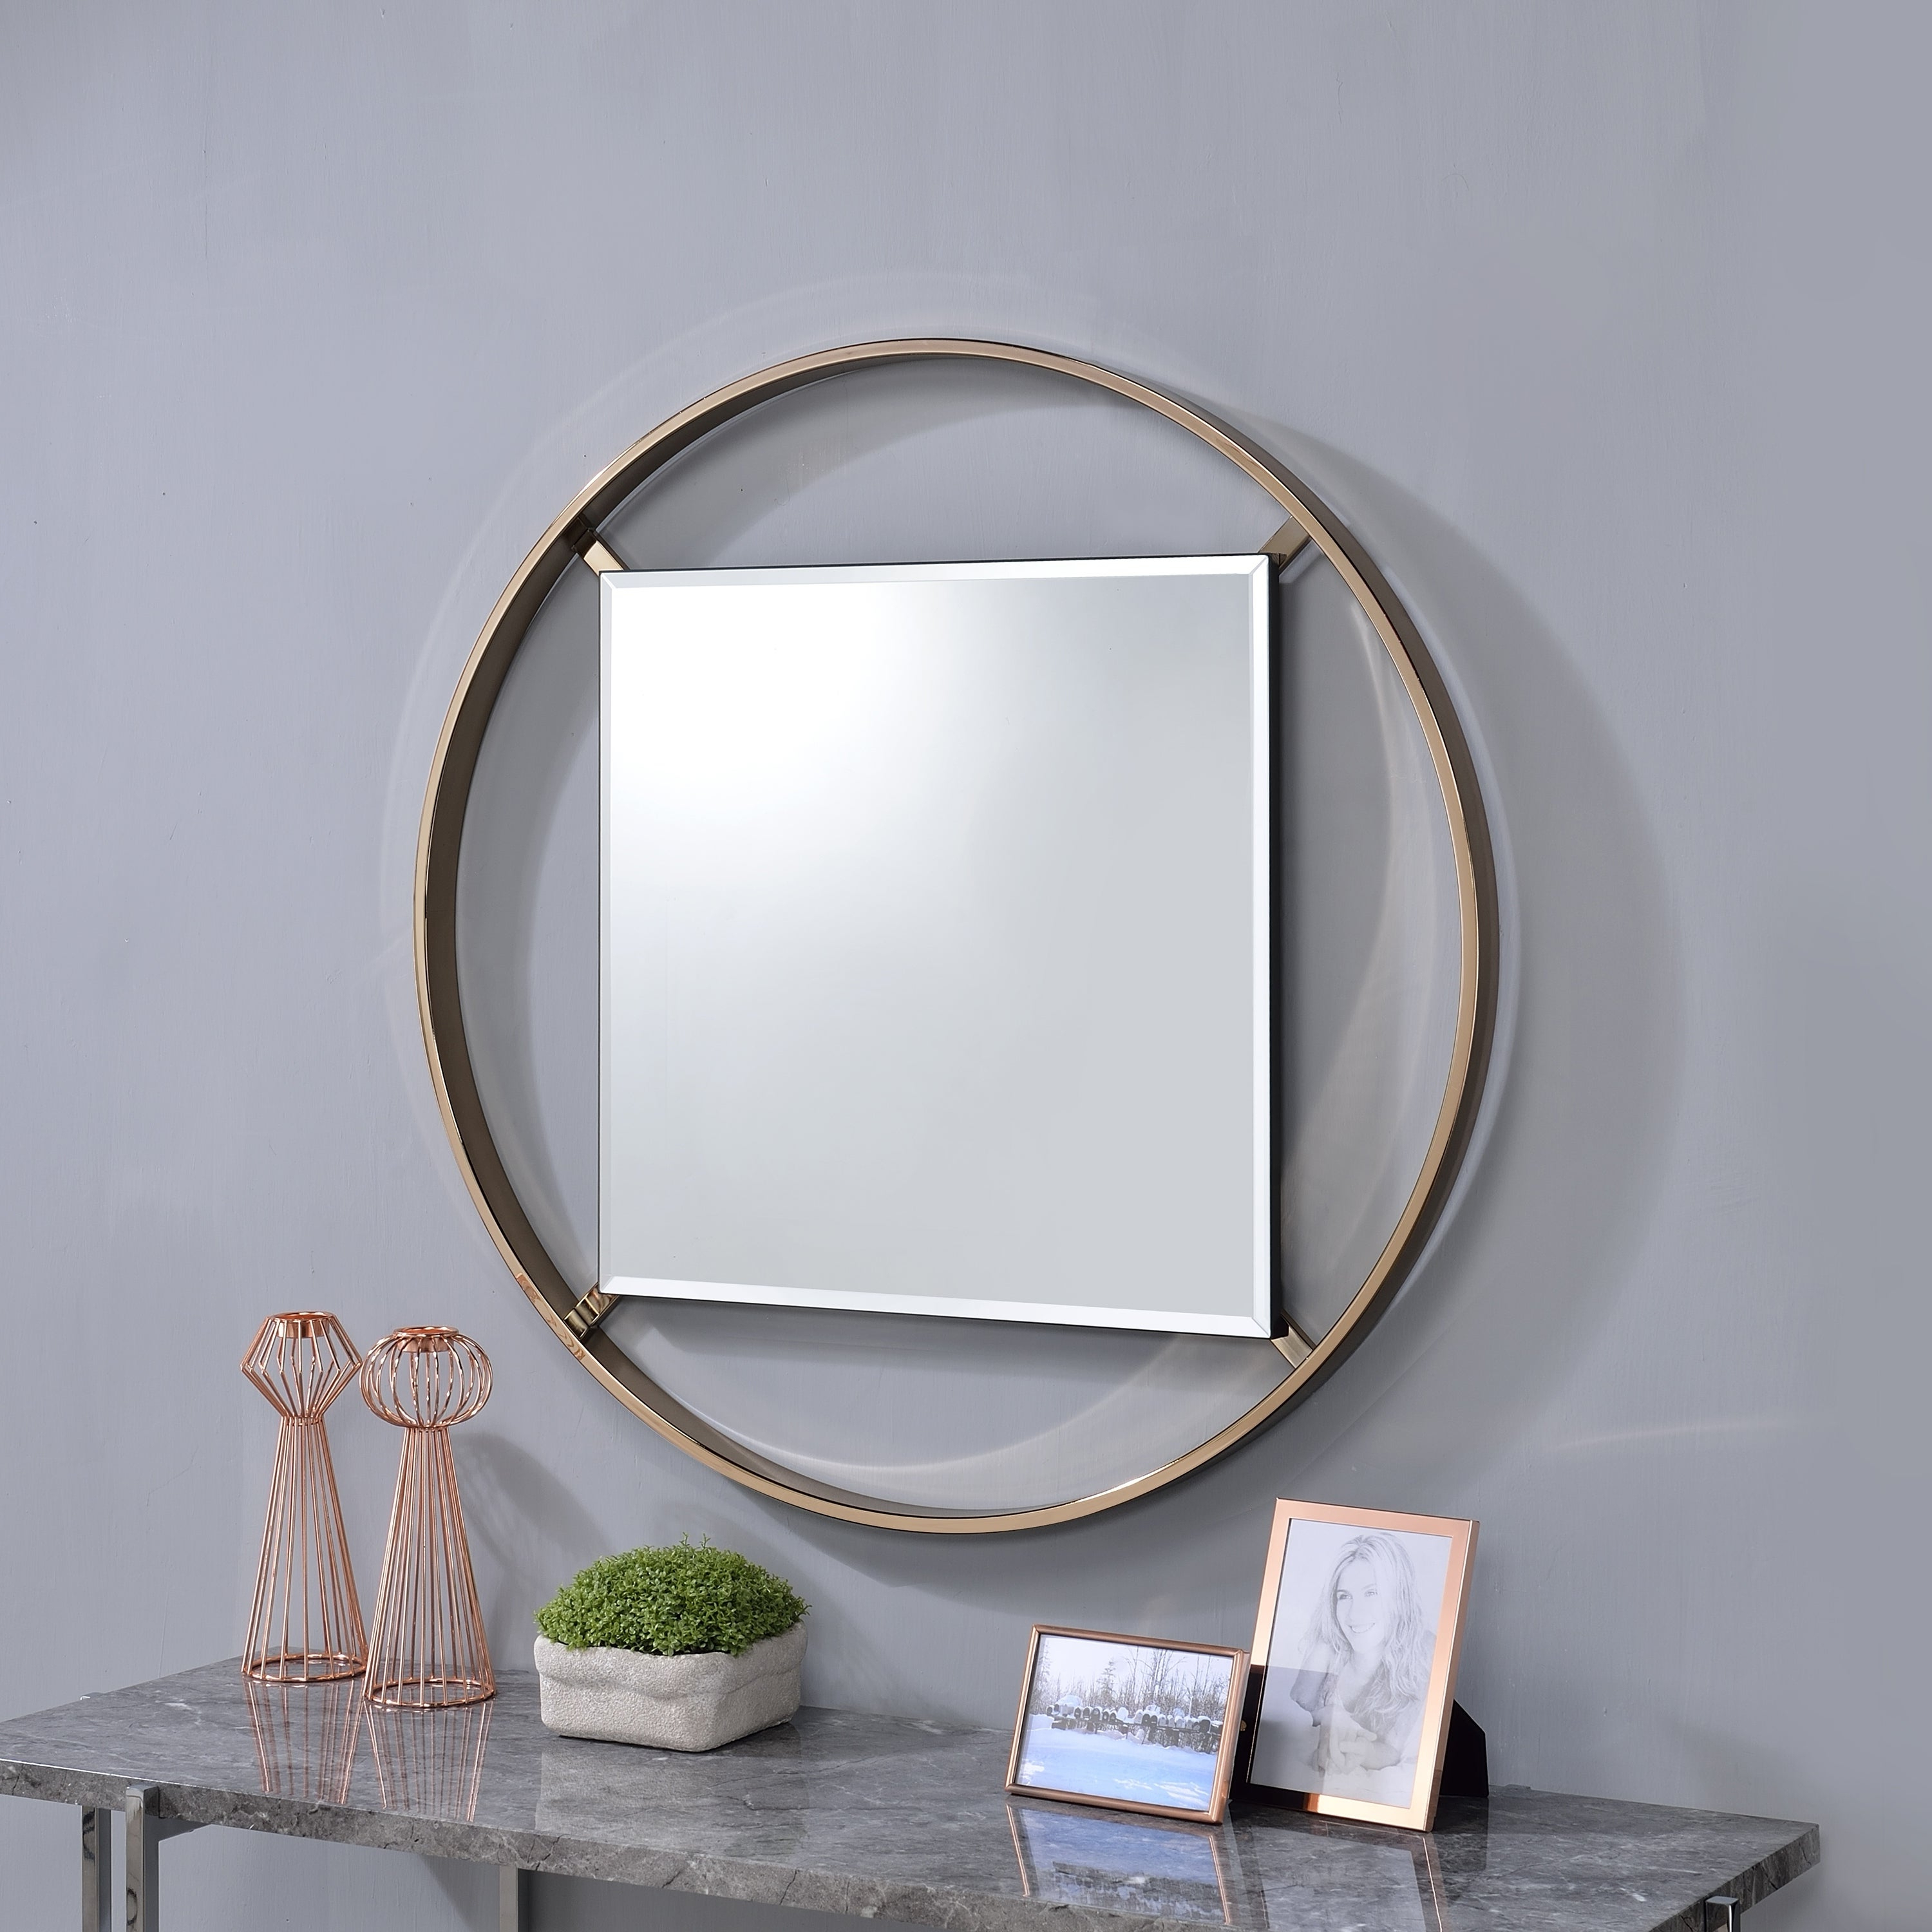 Widely Used Round Beveled Wall Mirrors With Regard To Furniture Of America Eugene 5mm Round Beveled Wall Mirror – A/n (View 15 of 20)